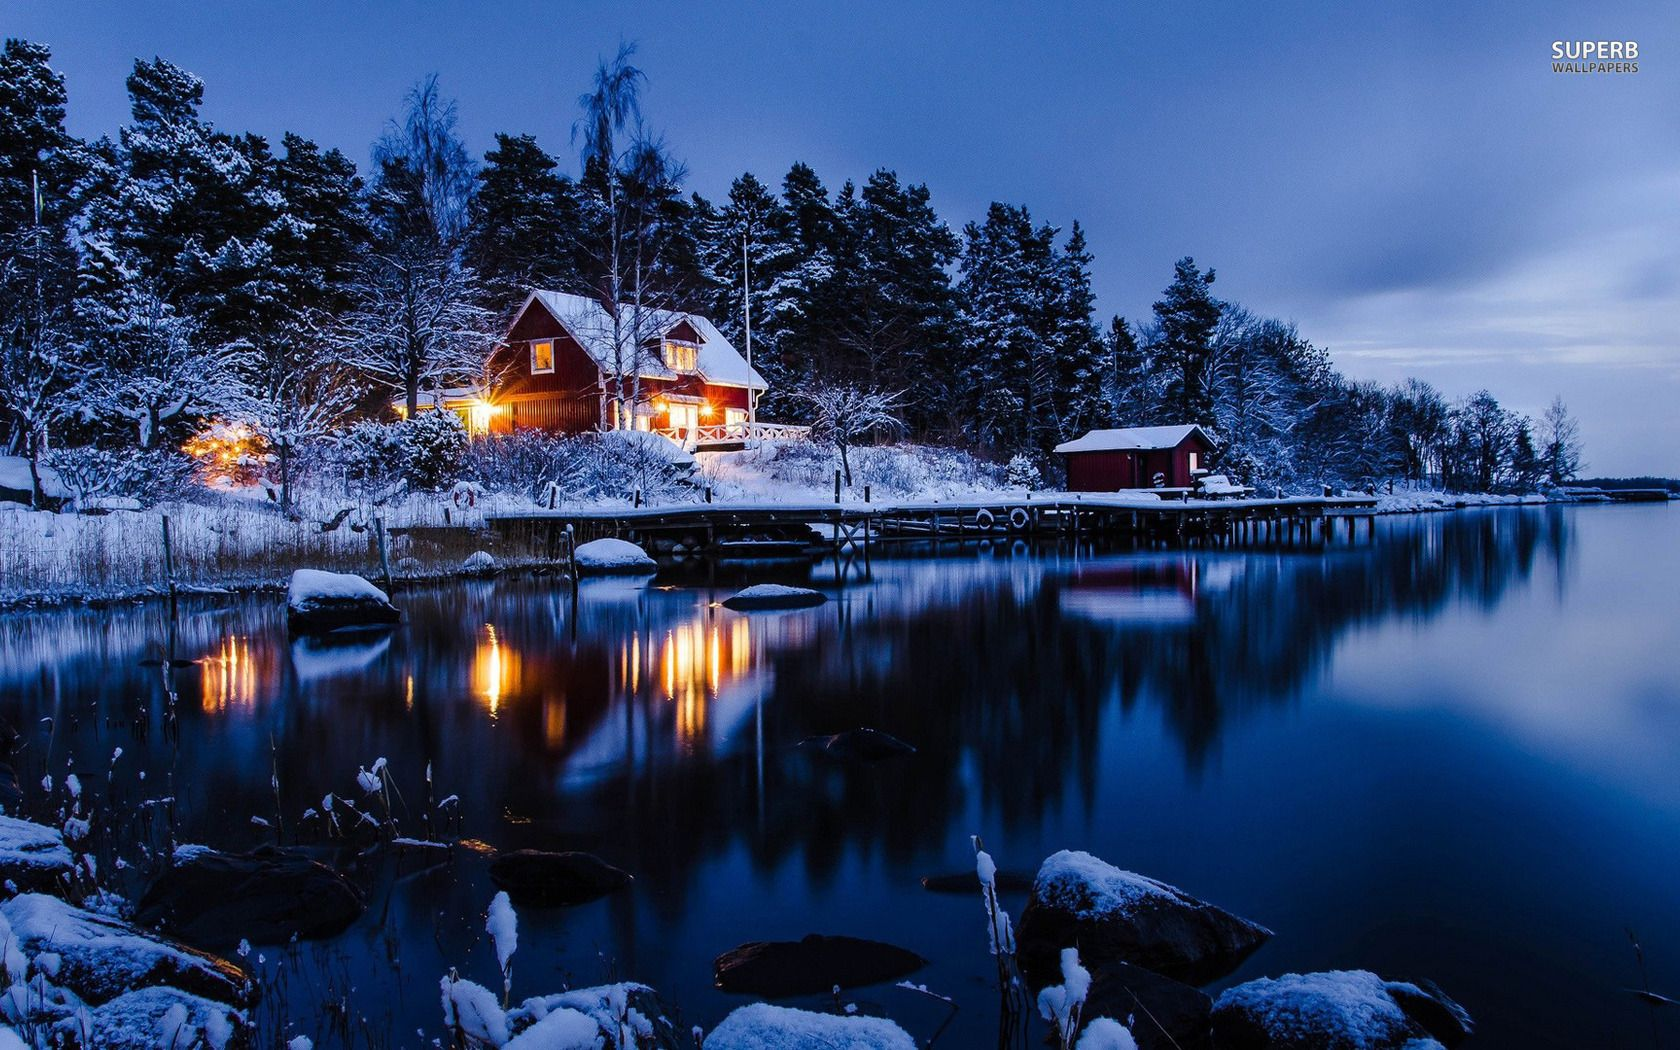 Winter Log Cabin Lakeside winter cabin wallpaper 1680x1050 1680x1050